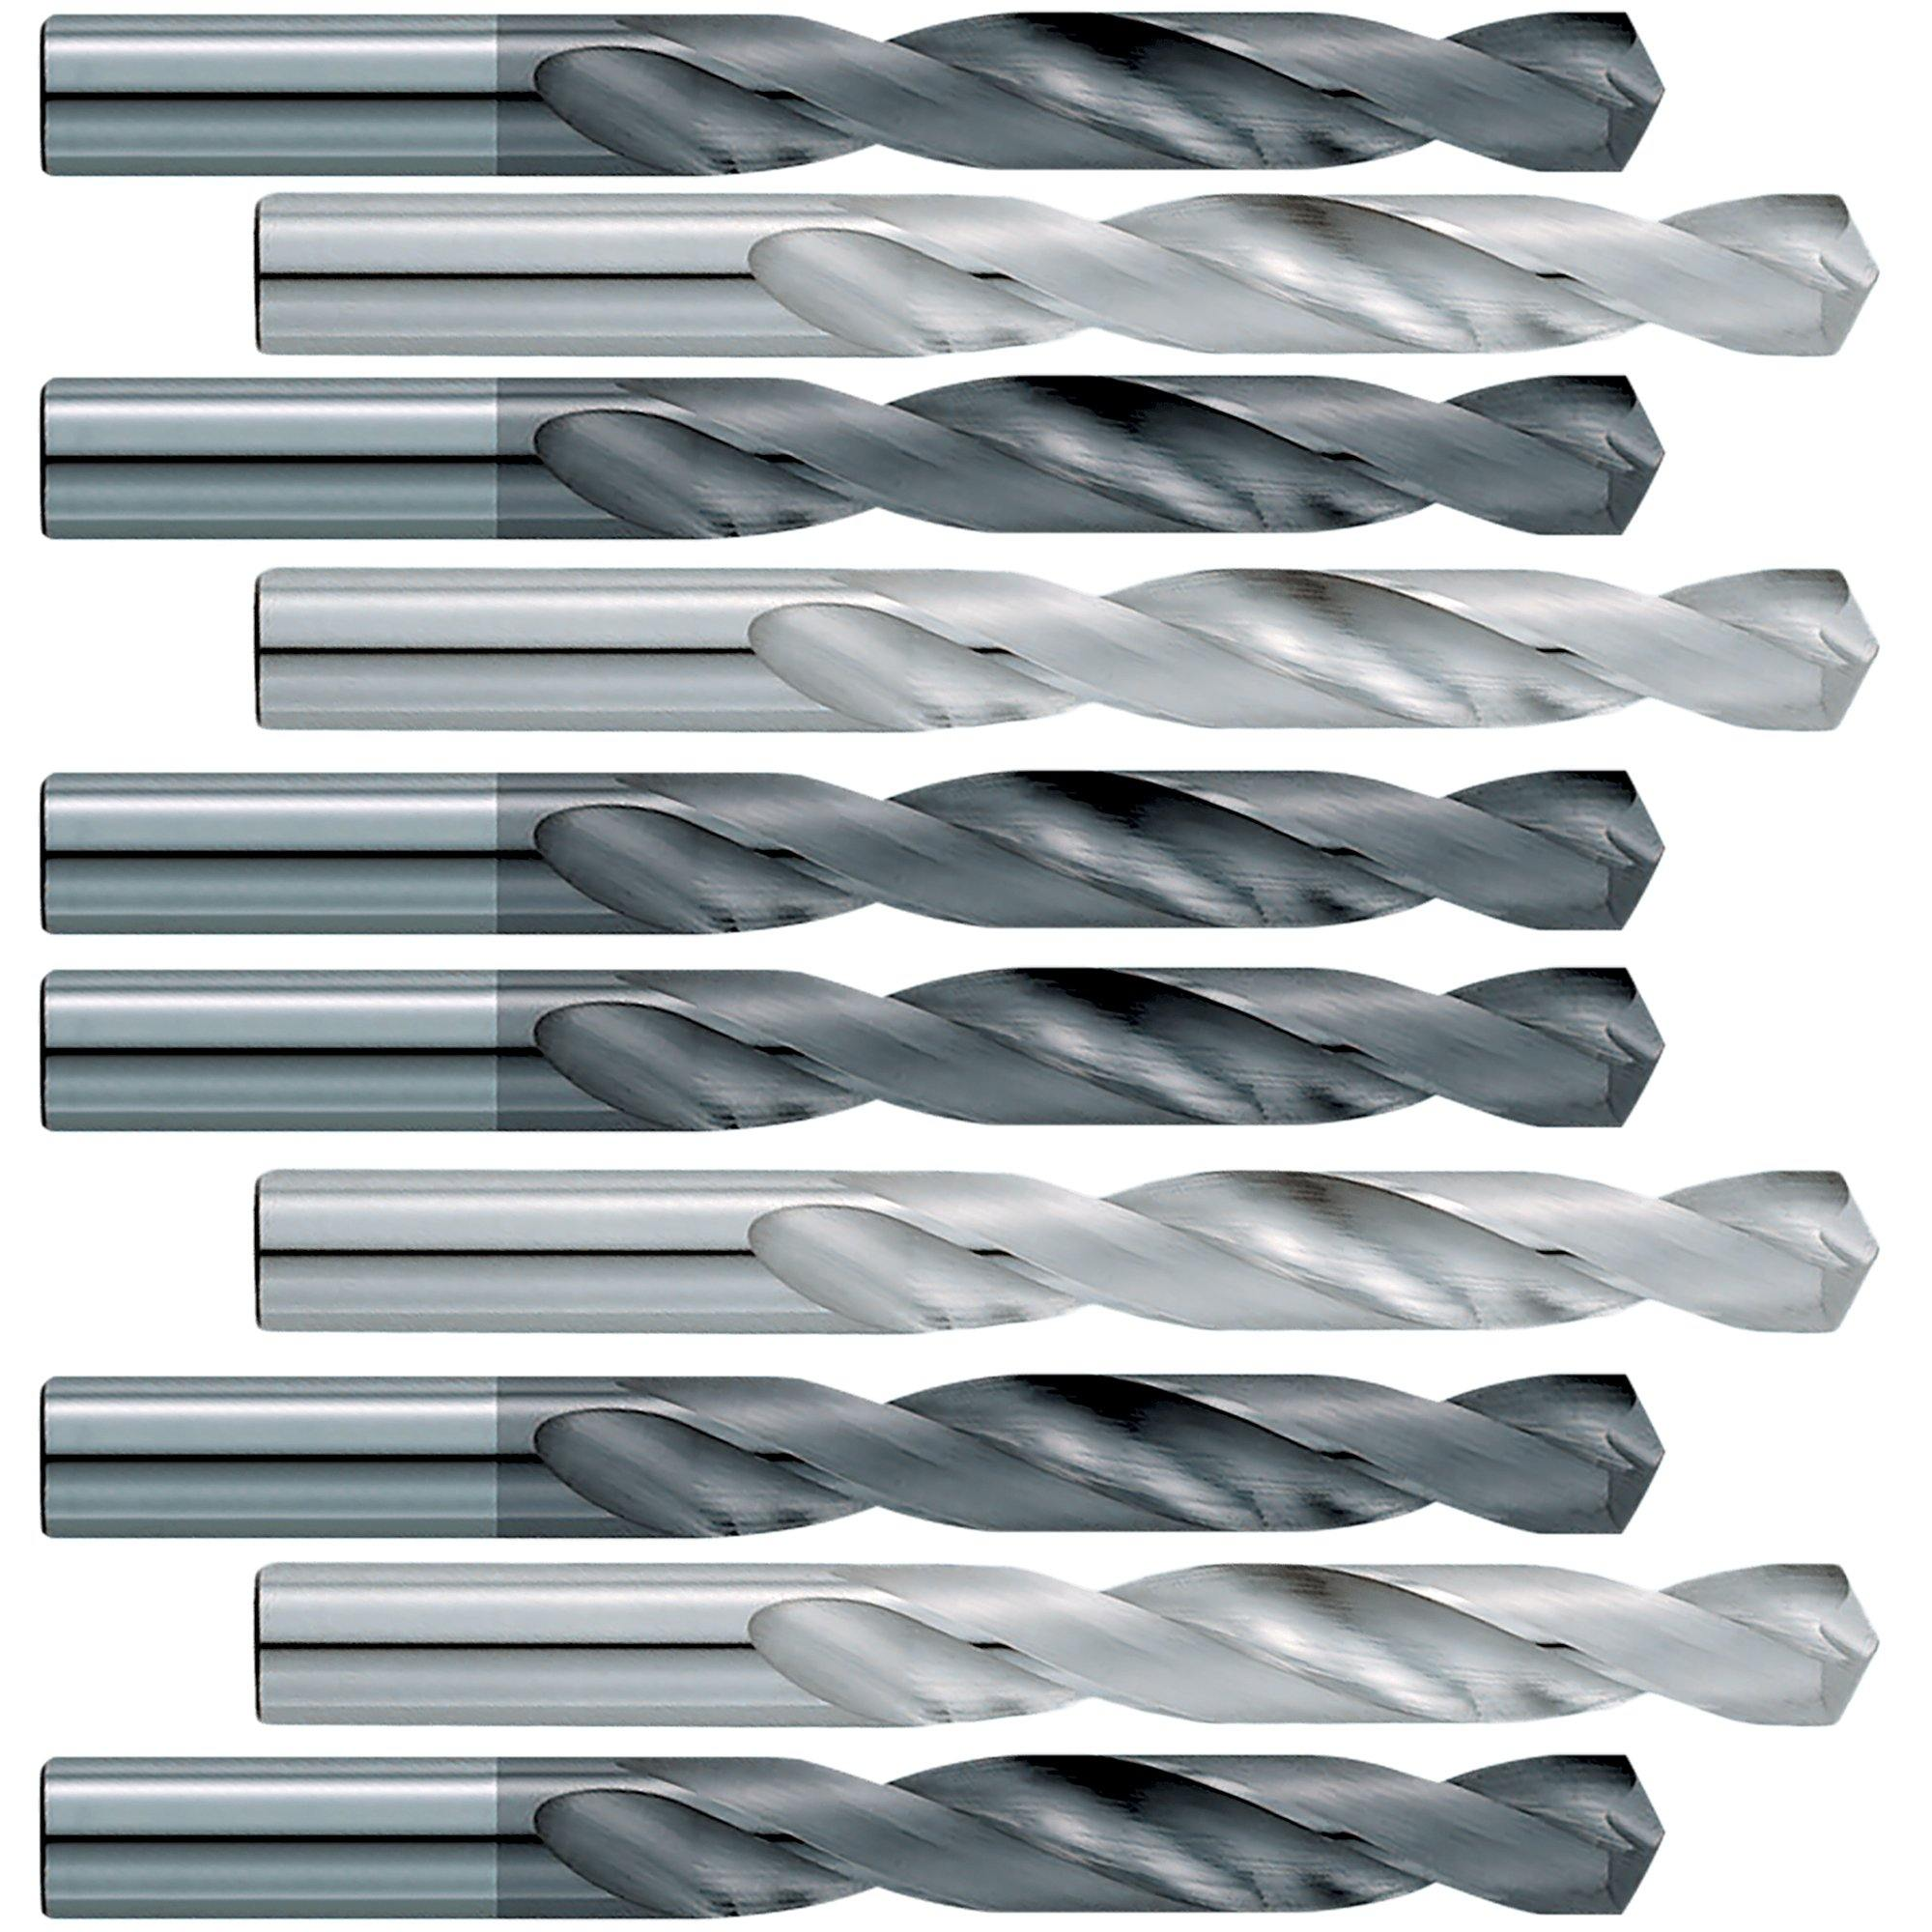 (10 Pack) 5mm x 44mm LOF x 76mm OAL Carbide Metric Drill Bits - End Mill Store